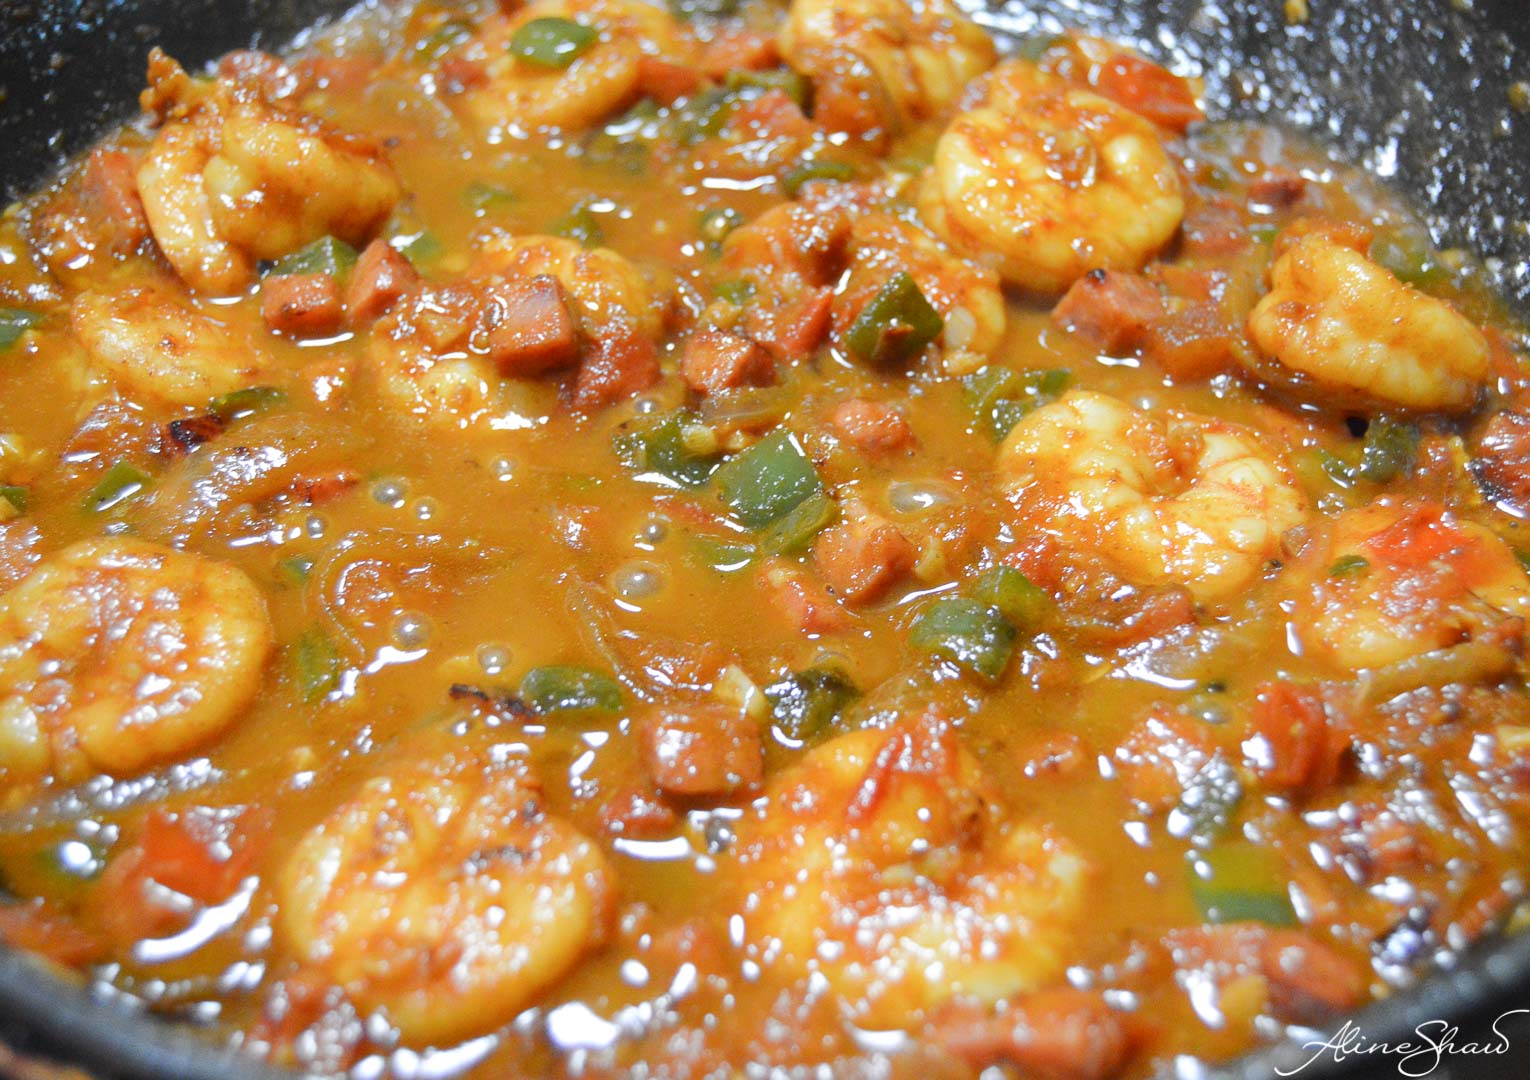 Shrimp and grits - prep